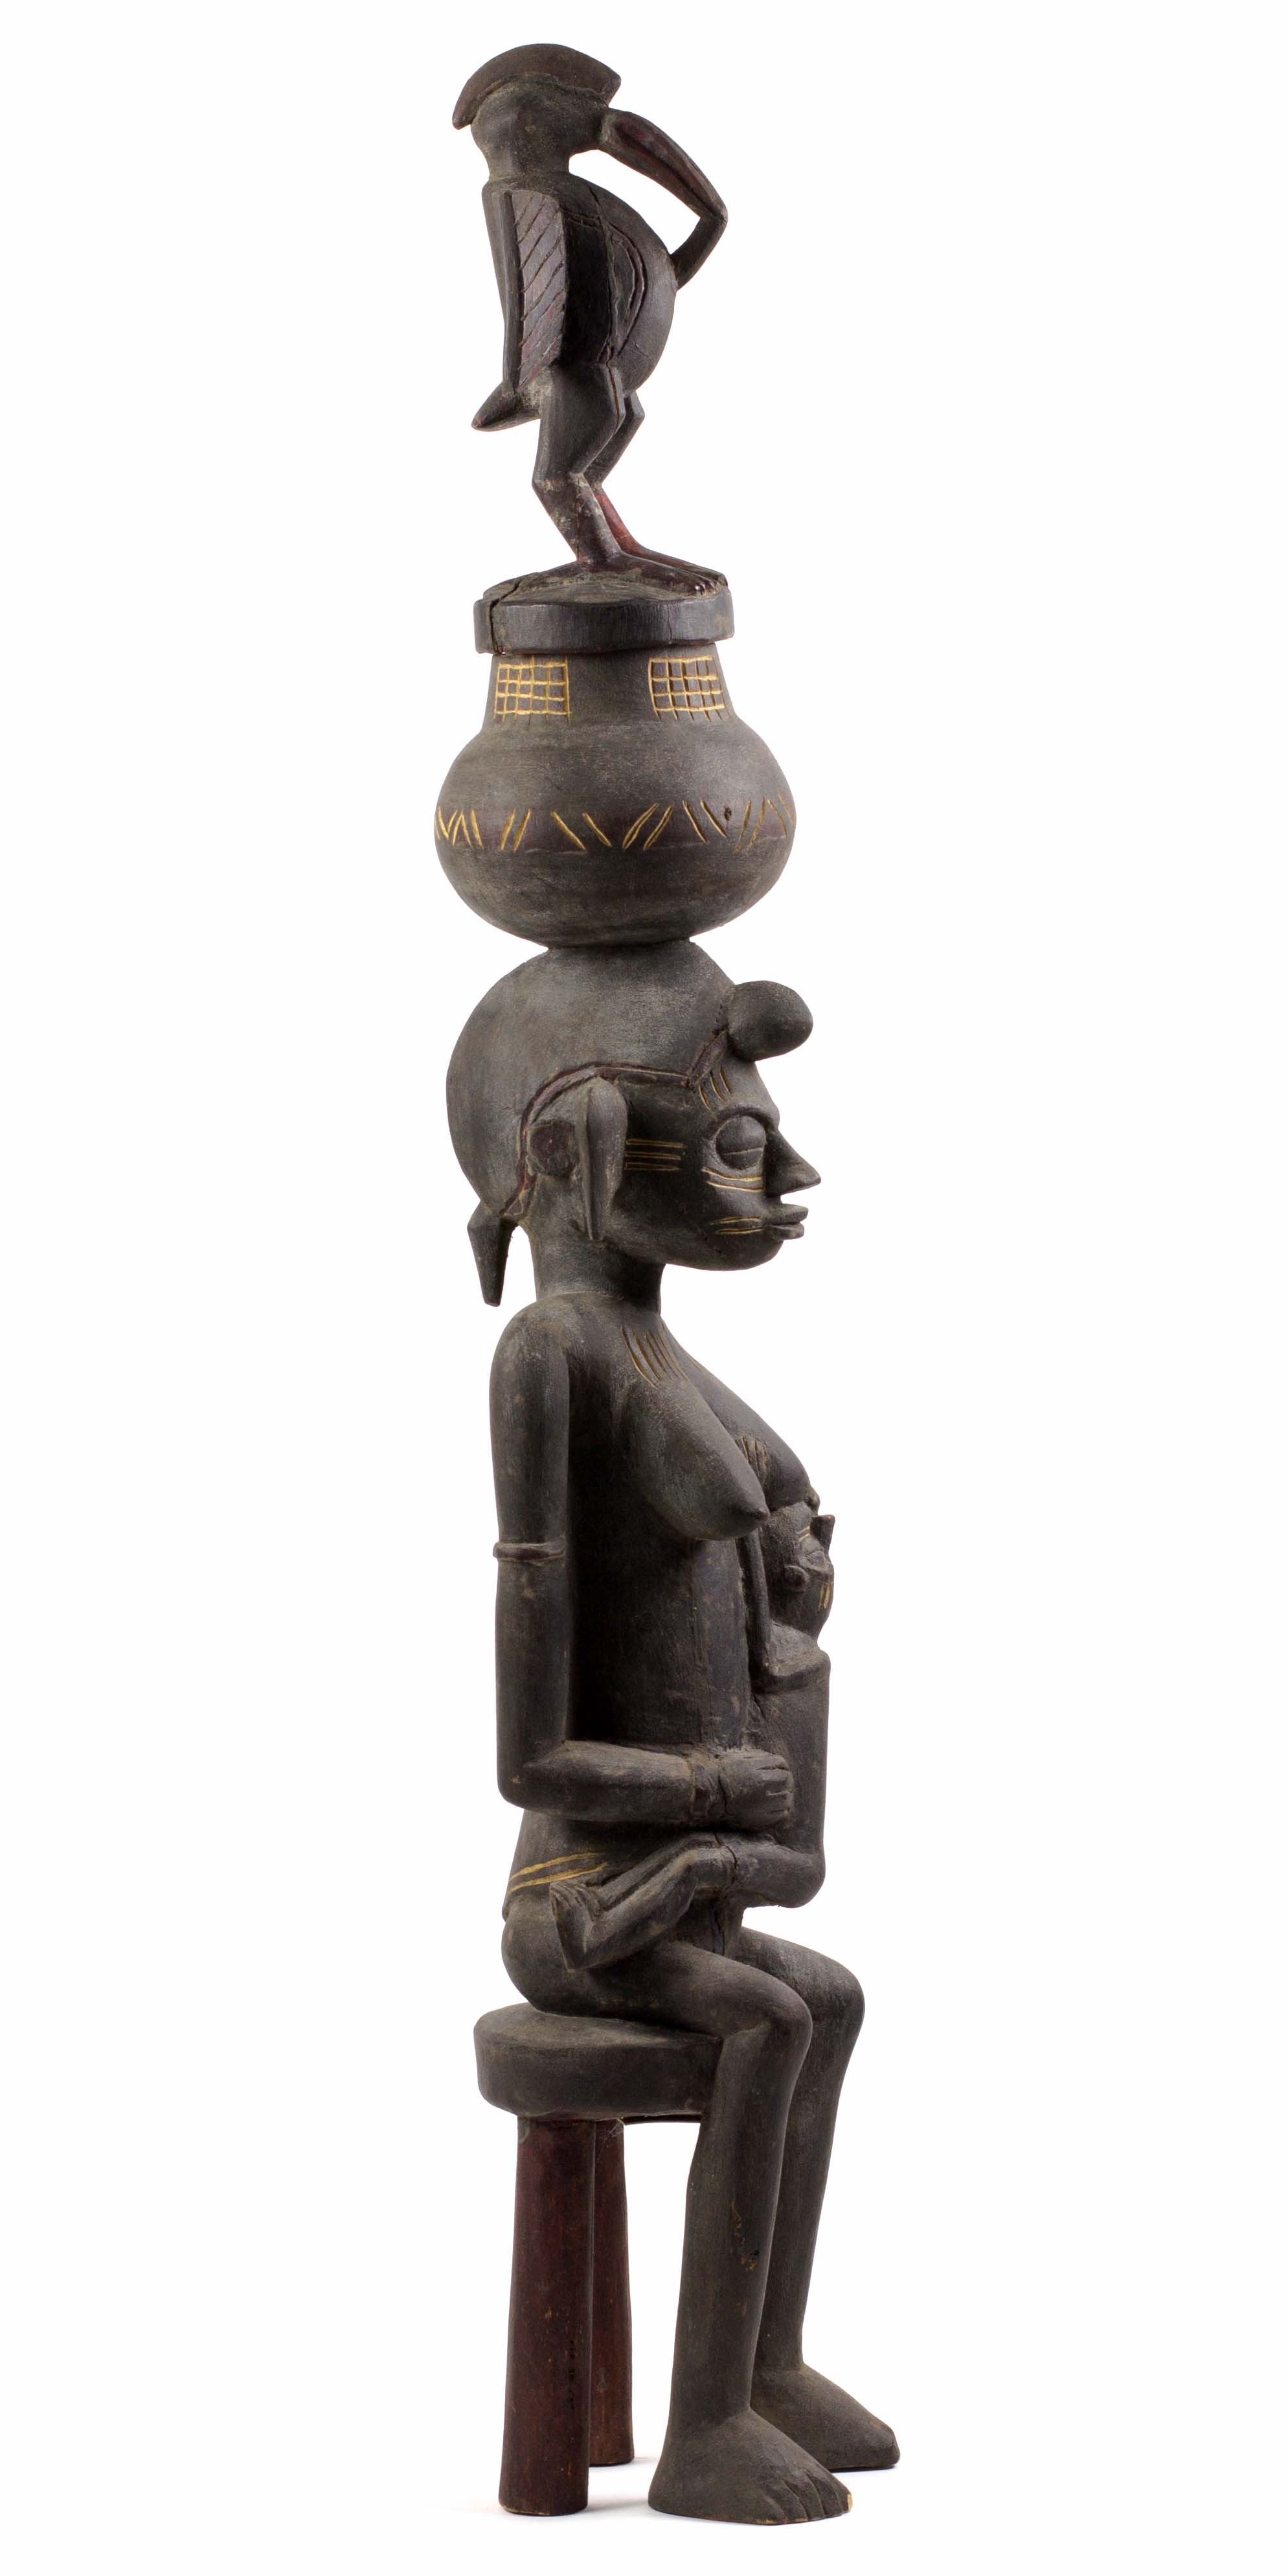 - Mother-and-child figureYnadjo KonéKolia (Region of Boundiali, Côte d'Ivoire)Carved in 1976 for Karl-Heinz KriegWood, H. 88 cm